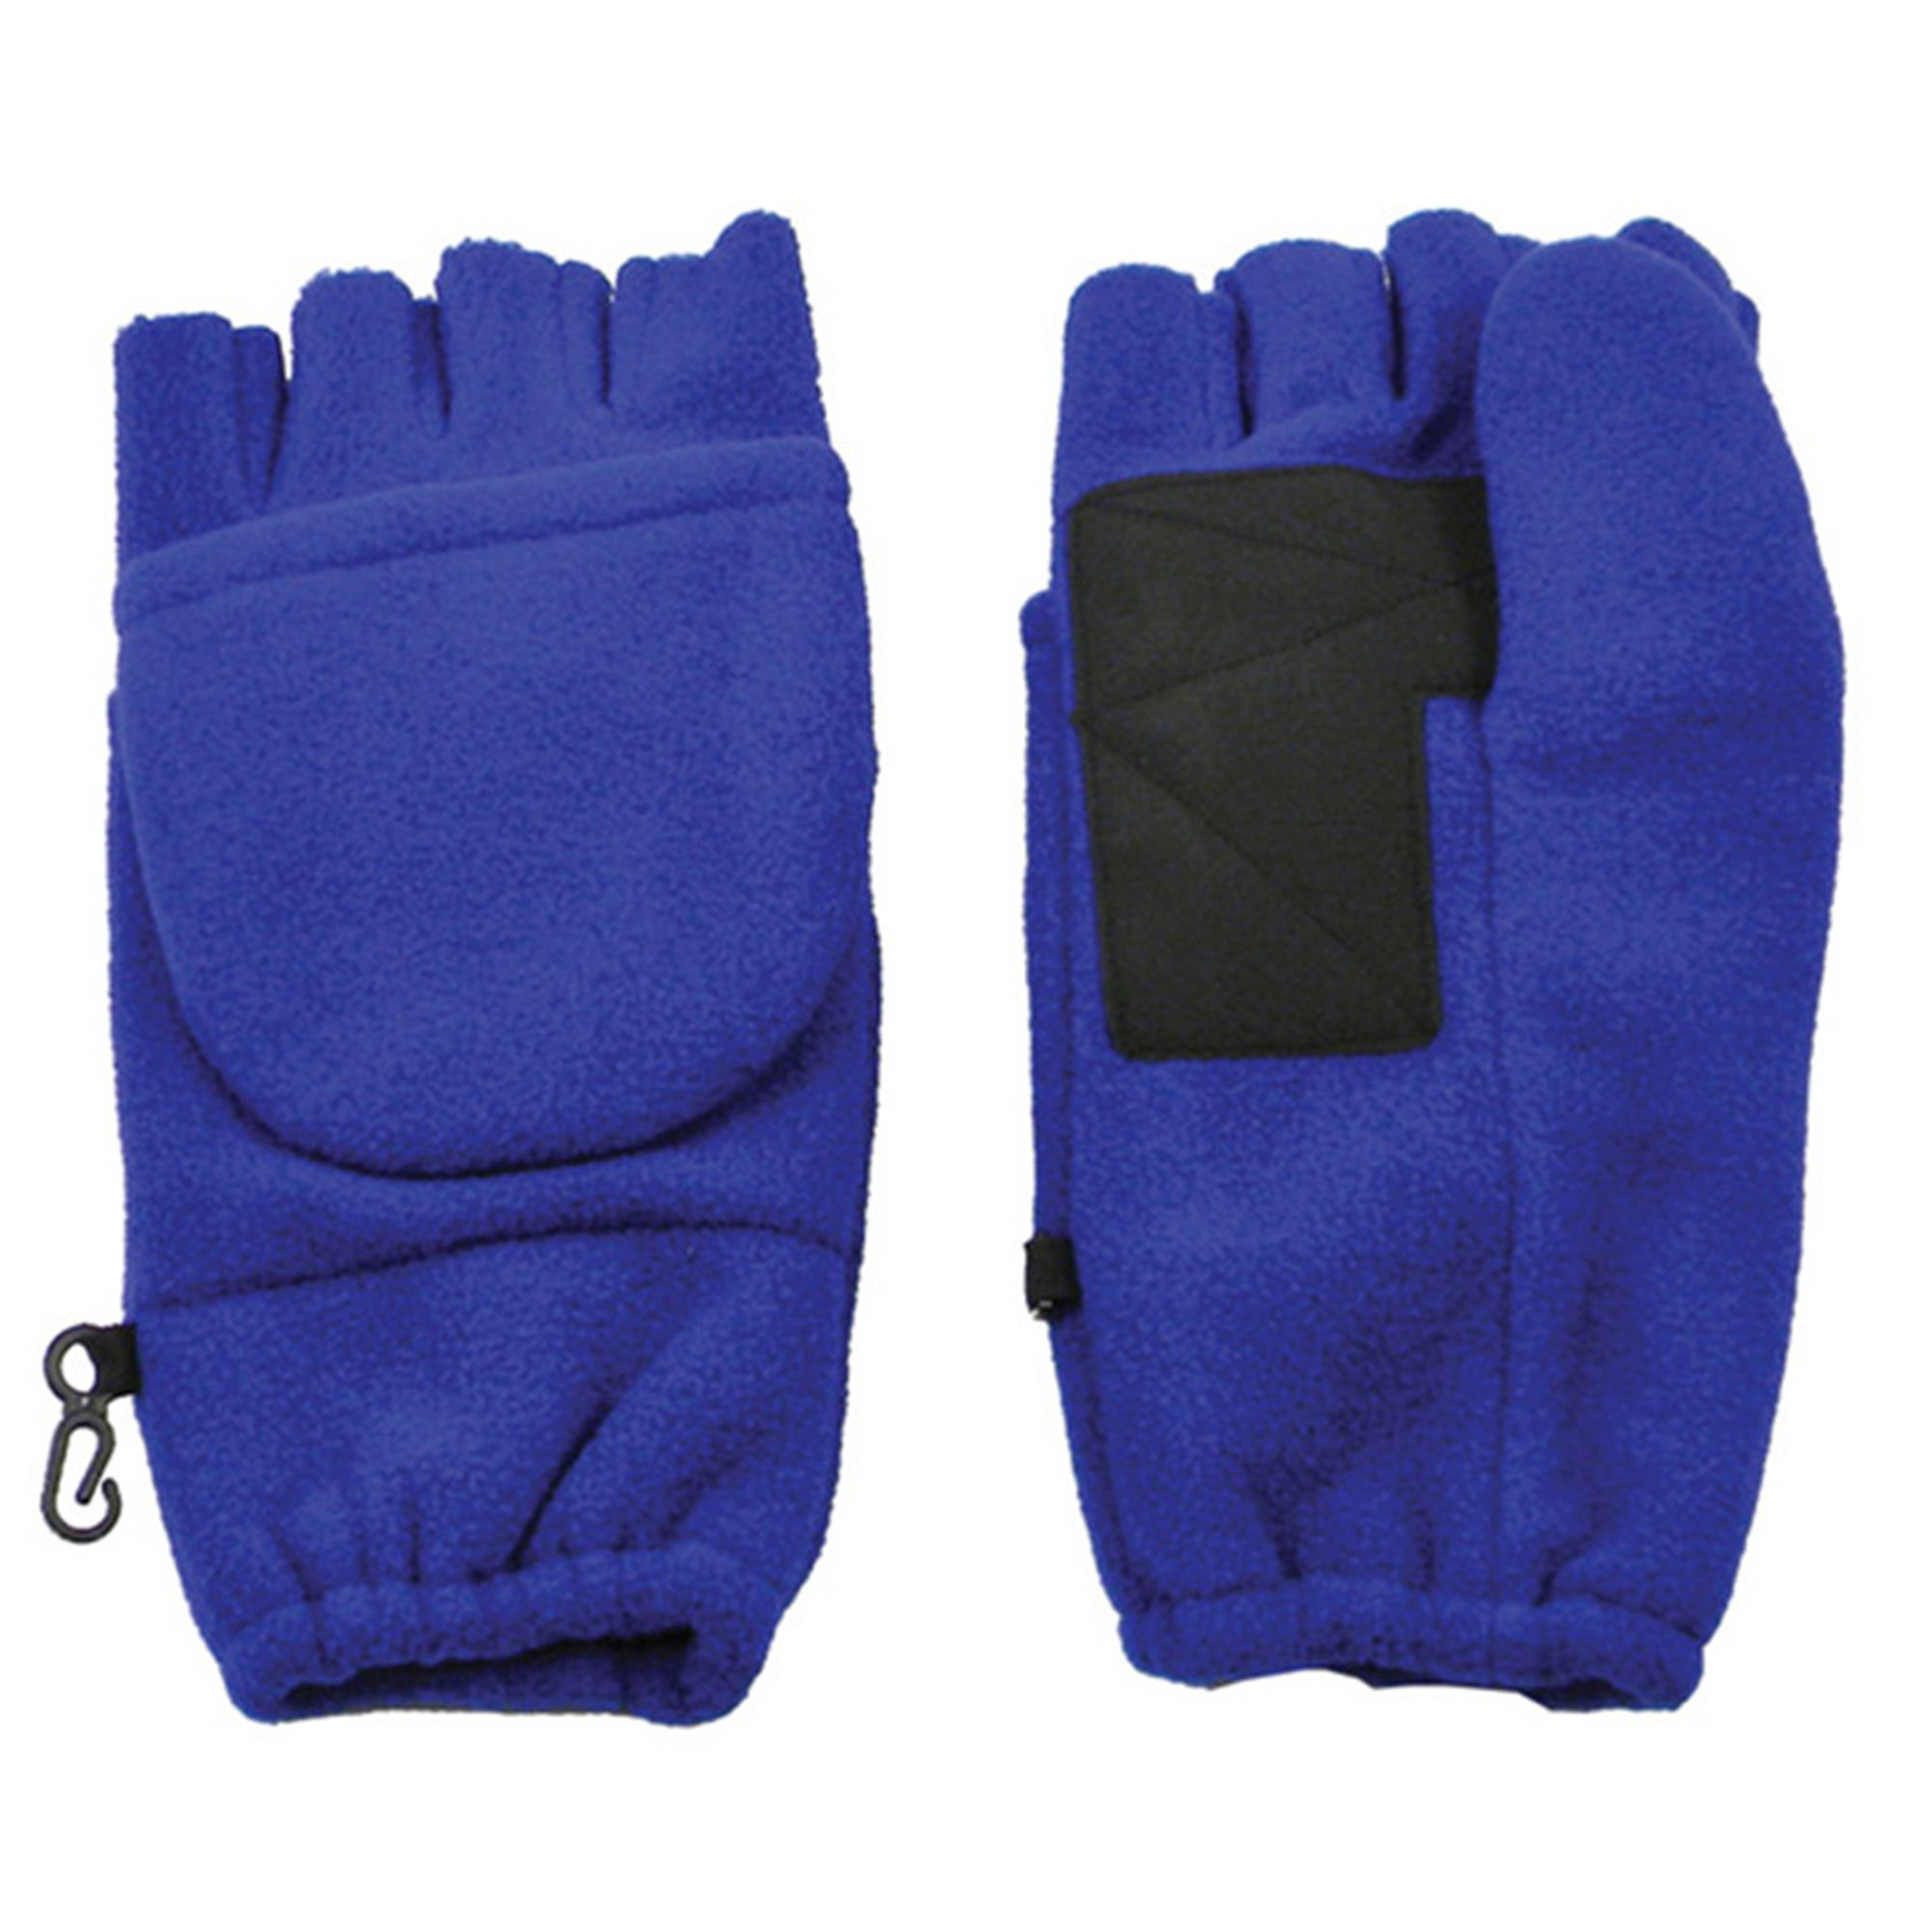 Winter Fingerless Gloves with Flap Cover Mitten Gloves, 194_Royal